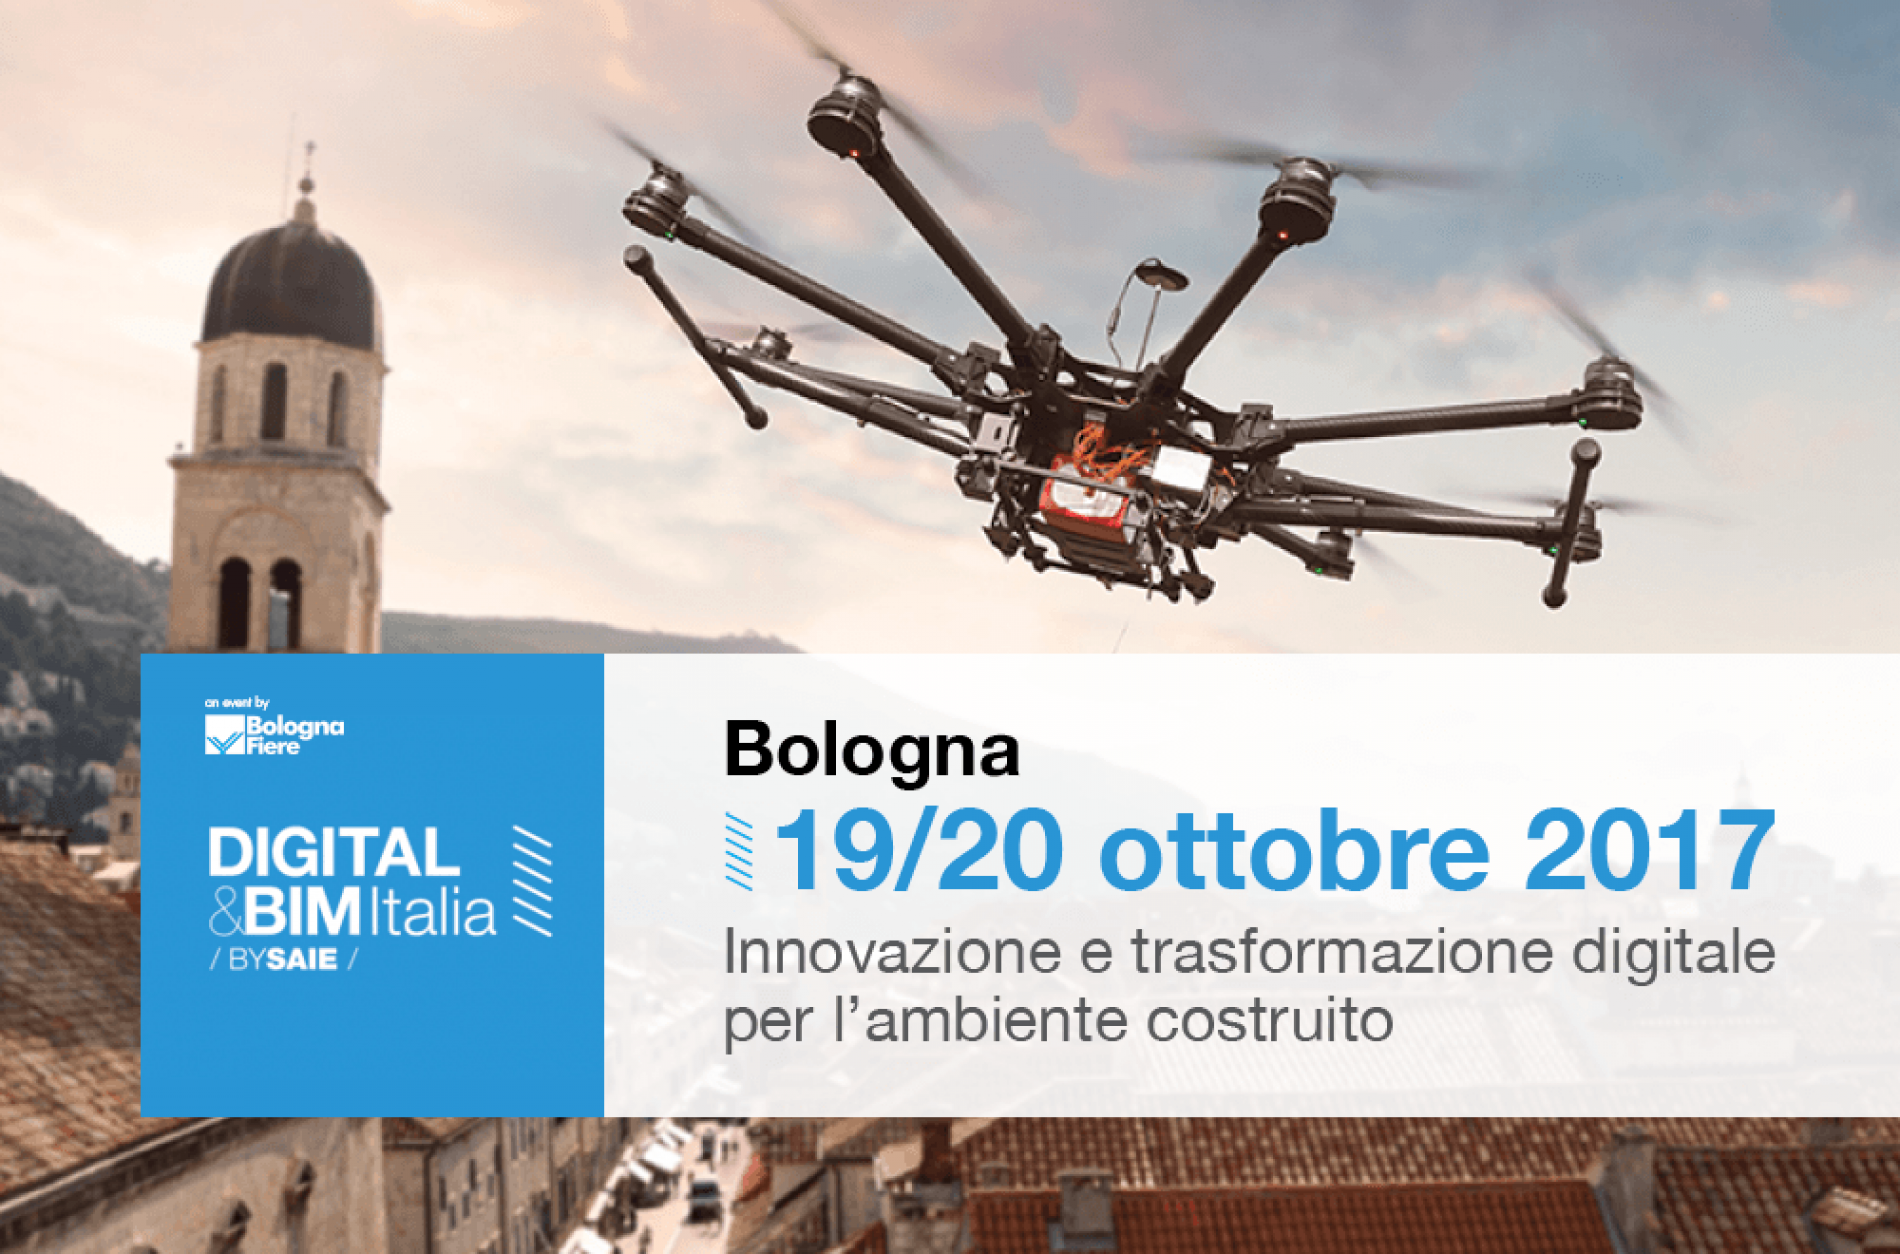 A Bologna la fiera DIGITAL&BIM